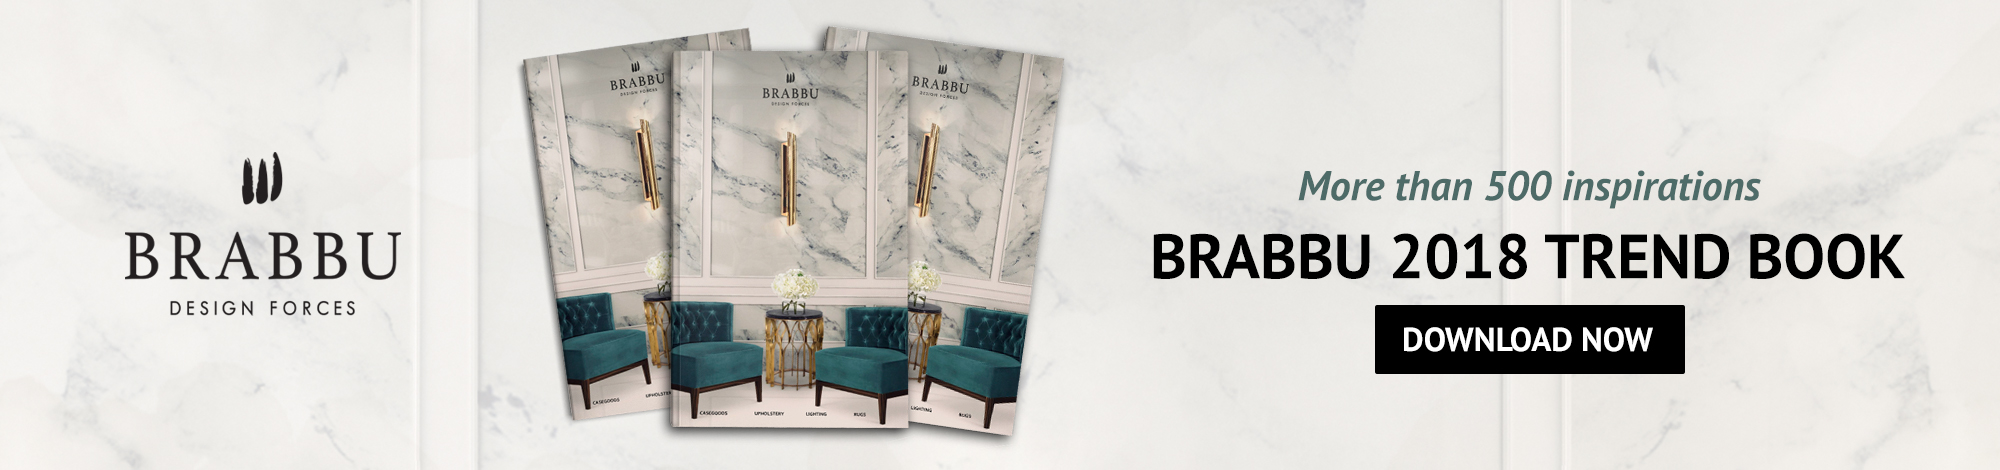 BRABBU Catalogue hotel lighting The newest trend in hotel lighting  1C5EB82328DCFD5BD10428DB124BD945082C079483CACCDD2D pimgpsh fullsize distr